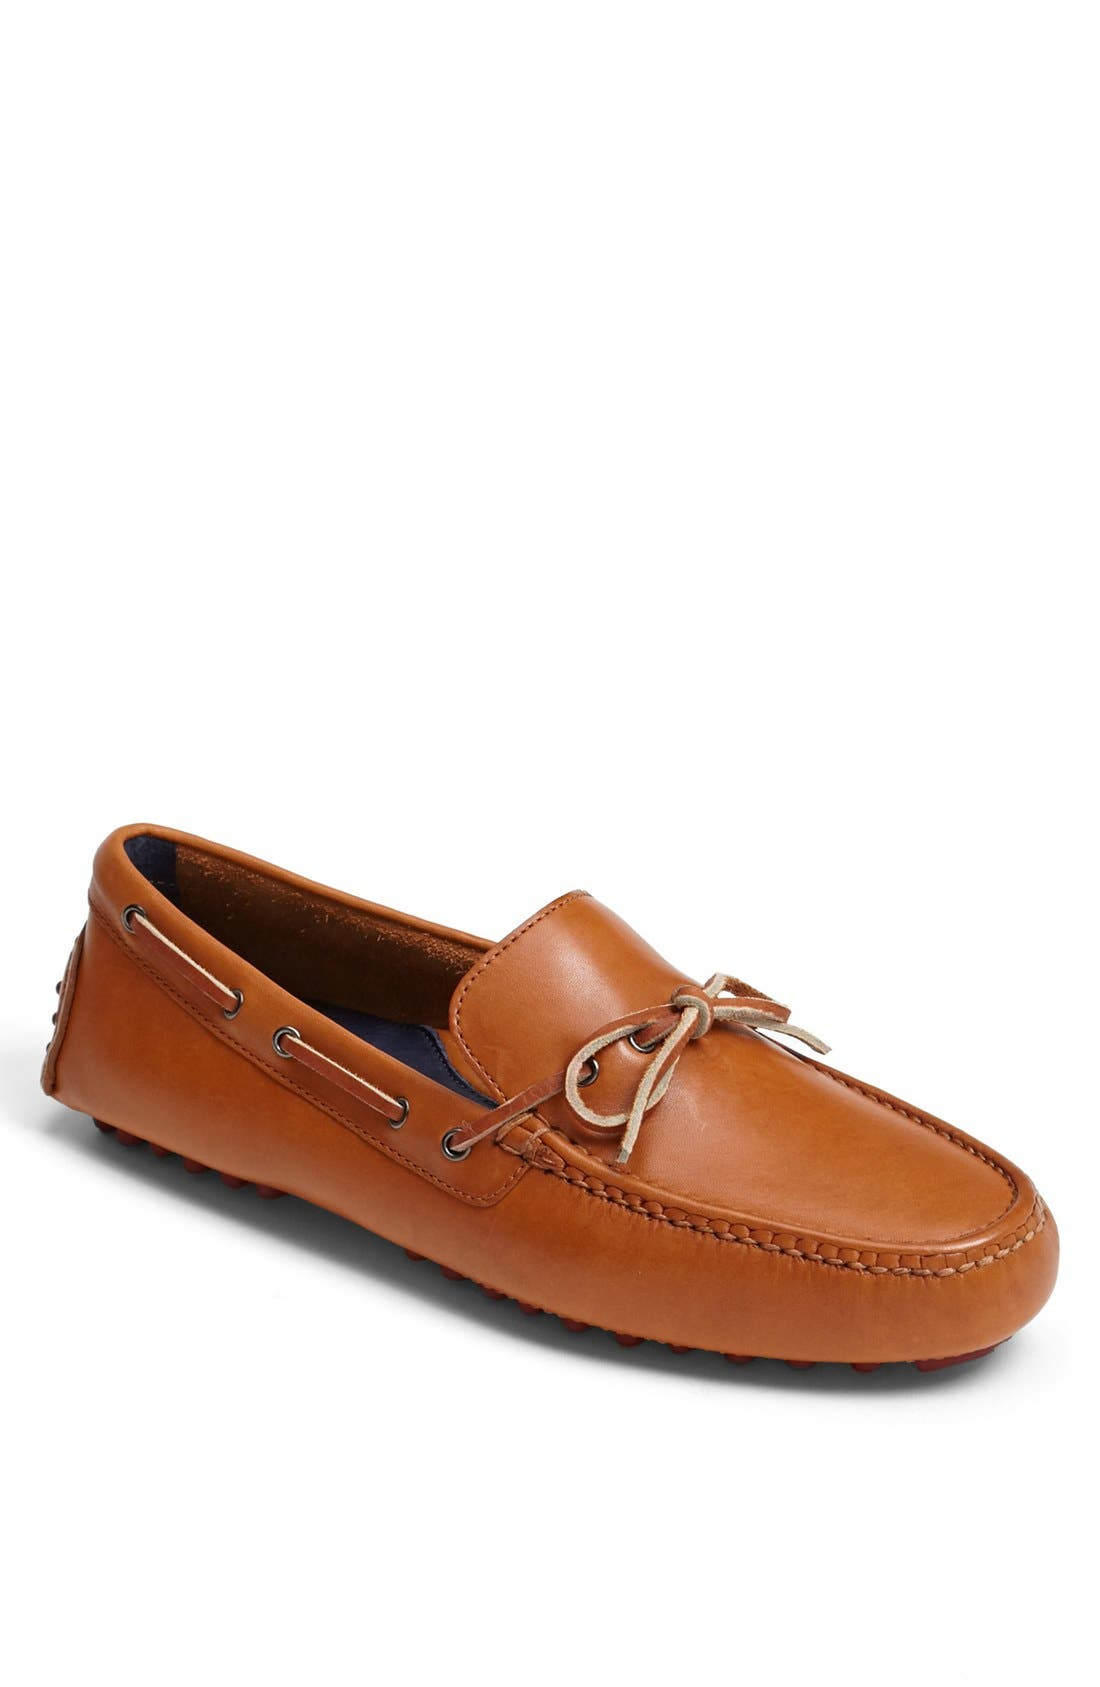 Alternate Image 1 Selected - Cole Haan 'Air Grant' Driving Loafer (Men)